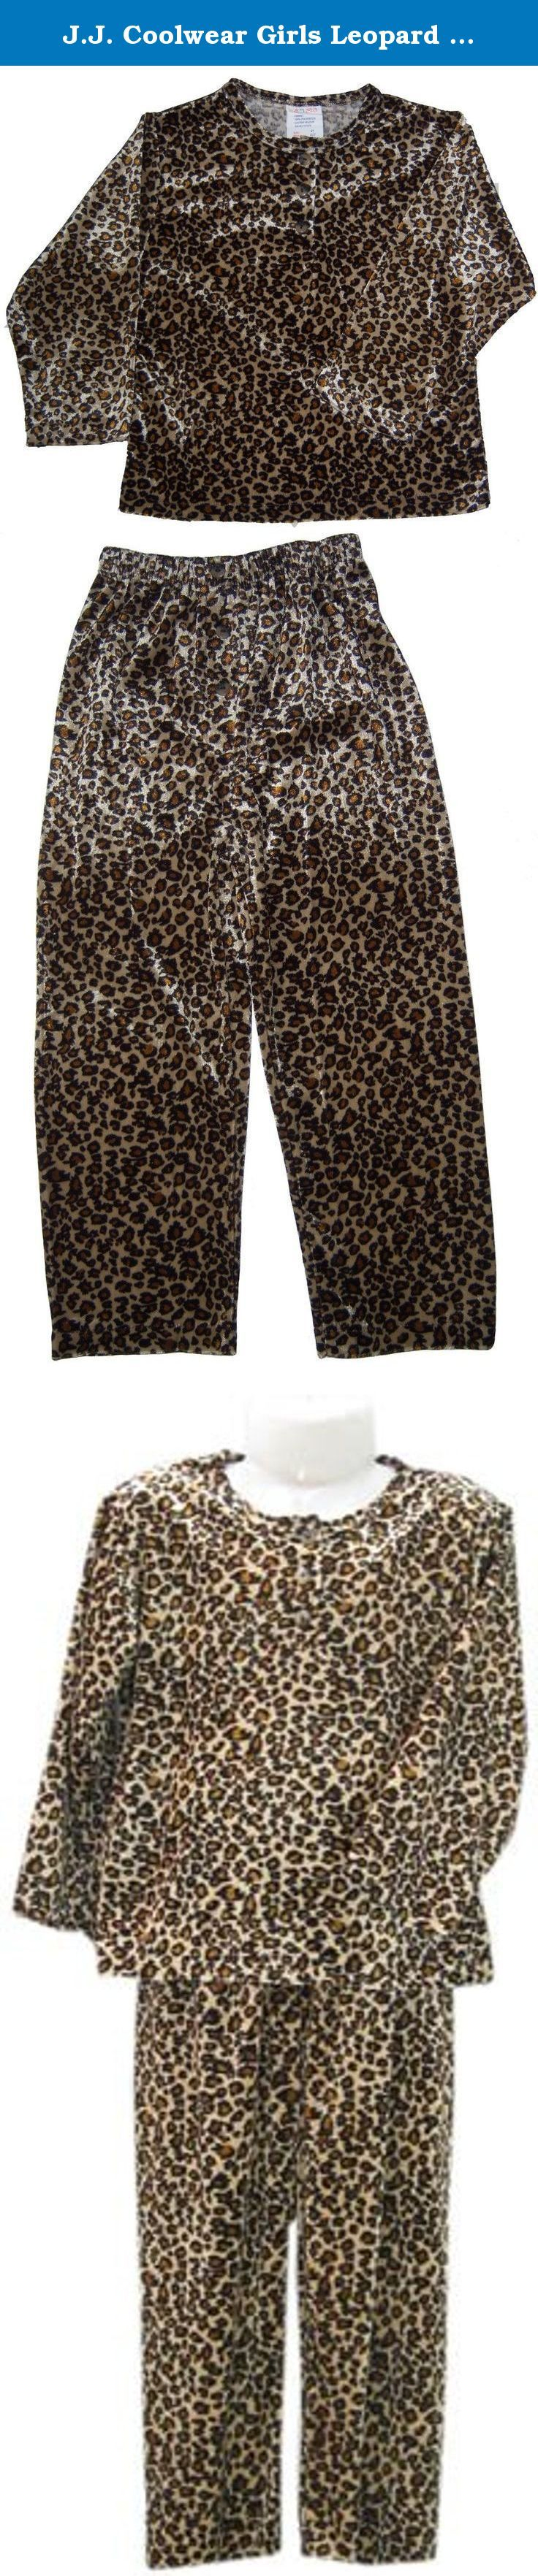 J.J. Coolwear Girls Leopard 2-pc Pajama Set + Free Leopard Slipper Size:6. Girls 2-pc Pajama Set Size 4- 6x7 3 Buttons at Front Opening of the Top and 3 Buttons at the Front of the Pants as Decoration. + Leopard Slipper.